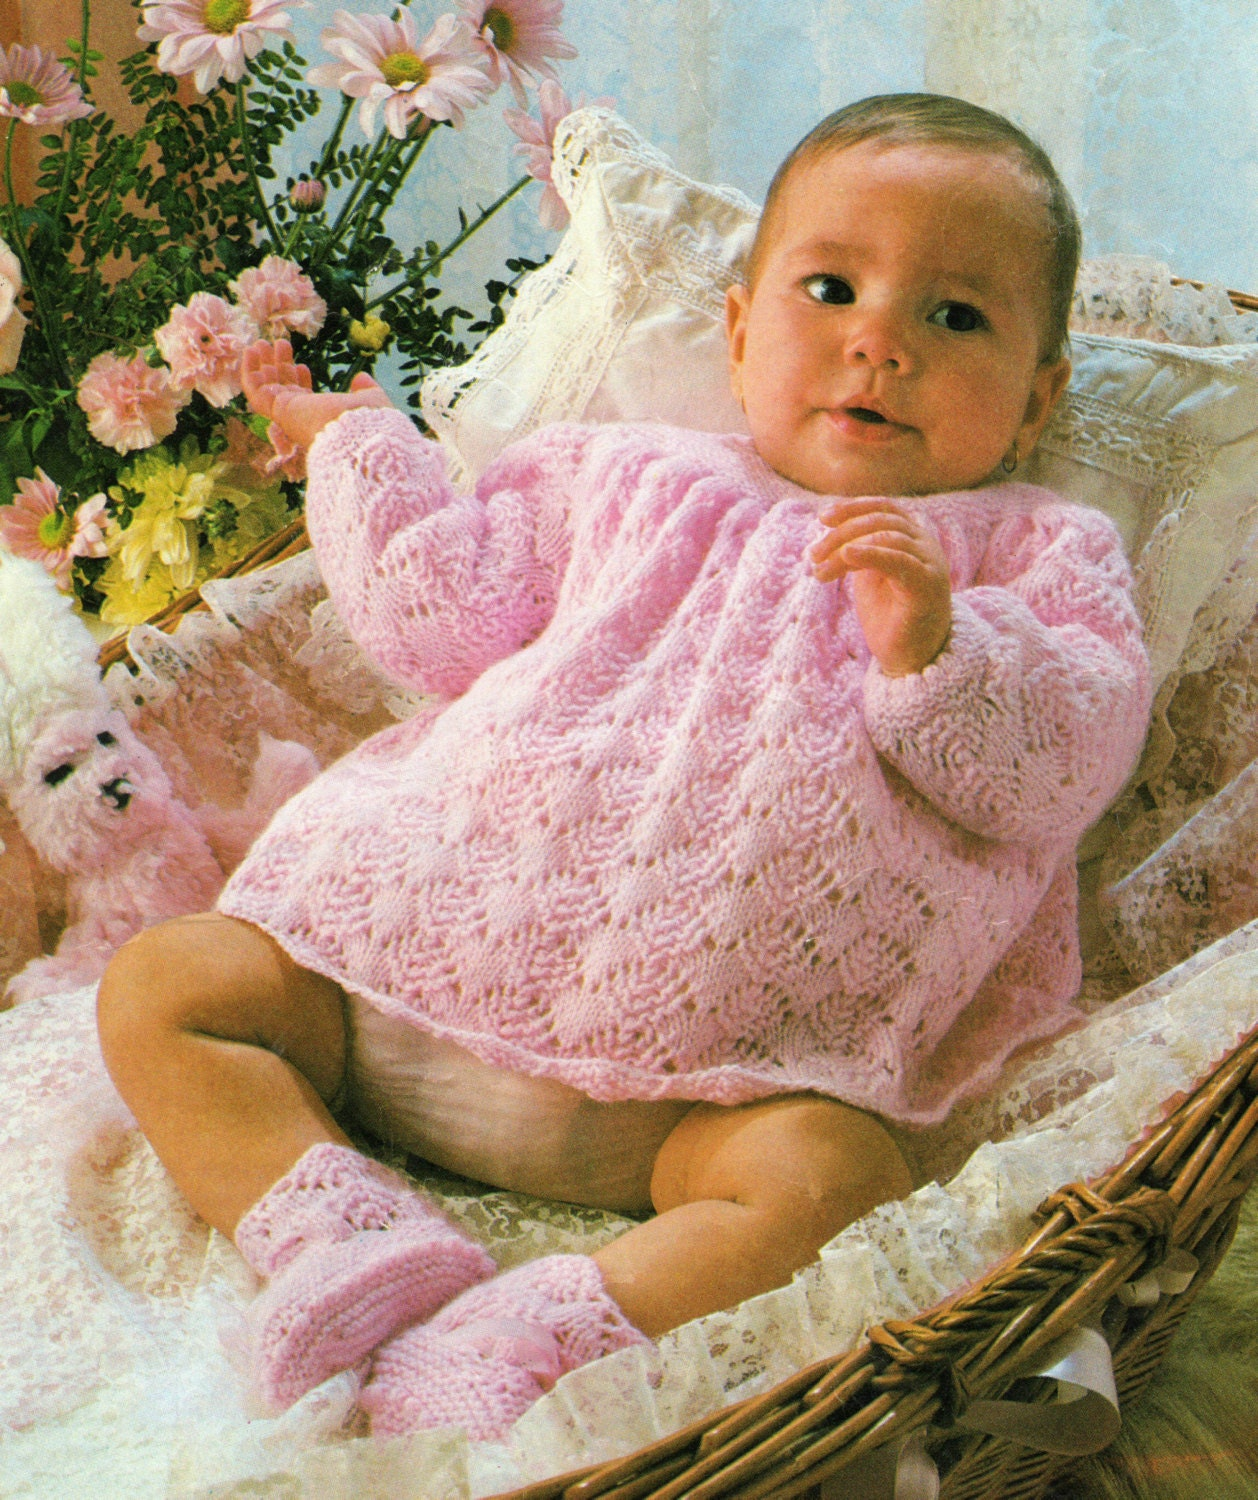 Baby Knitting Pattern  Angel Top and Bootees Set  18  19 inches  4 ply yarn